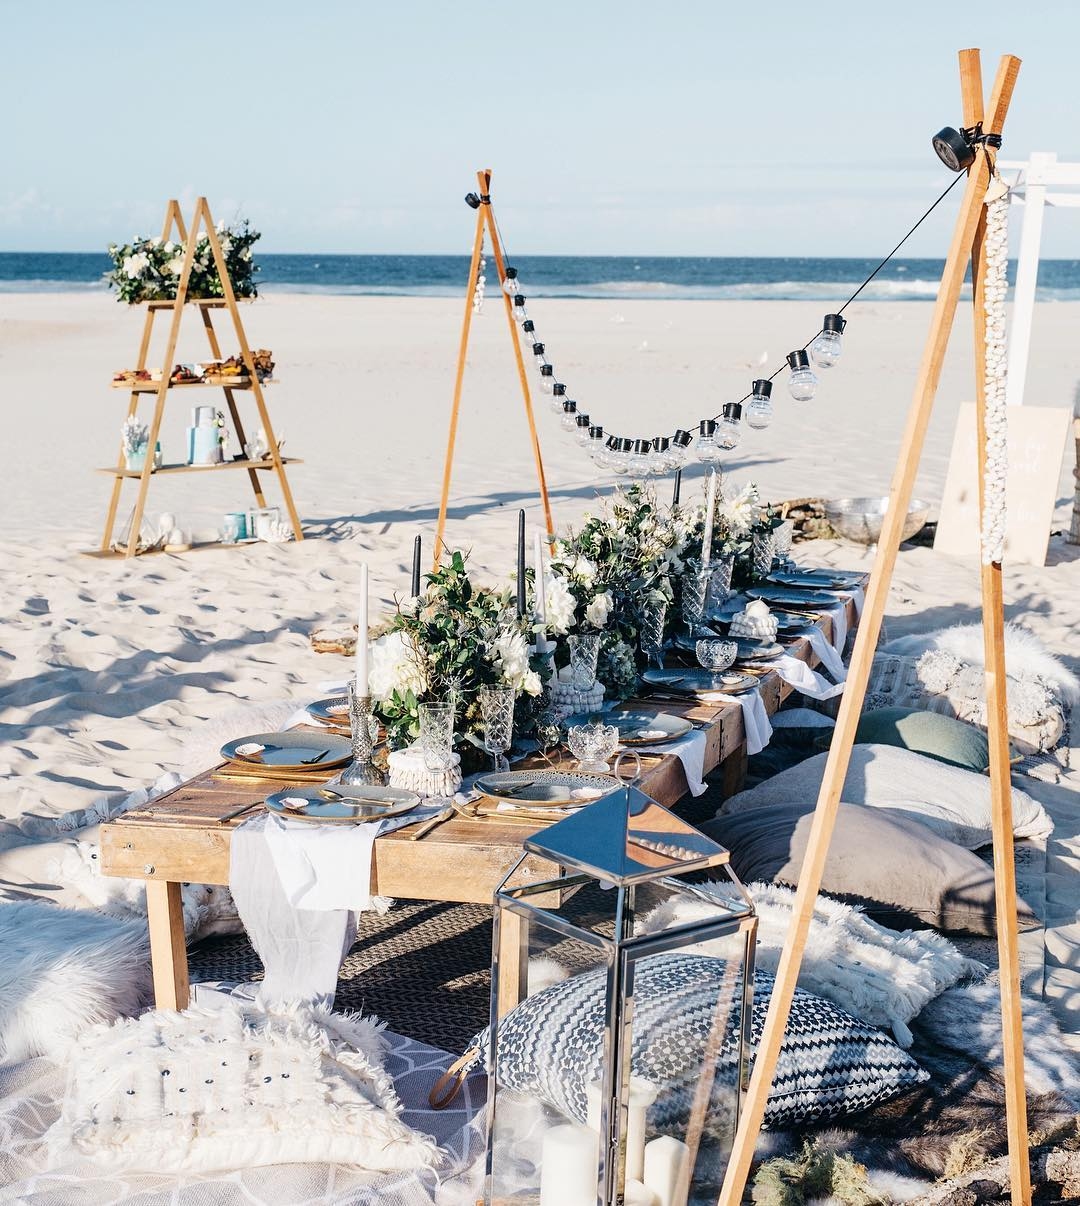 Ideas Para Decorar Bodas En La Playa Todoboda.com - Ideas Para Una Boda En La Playa